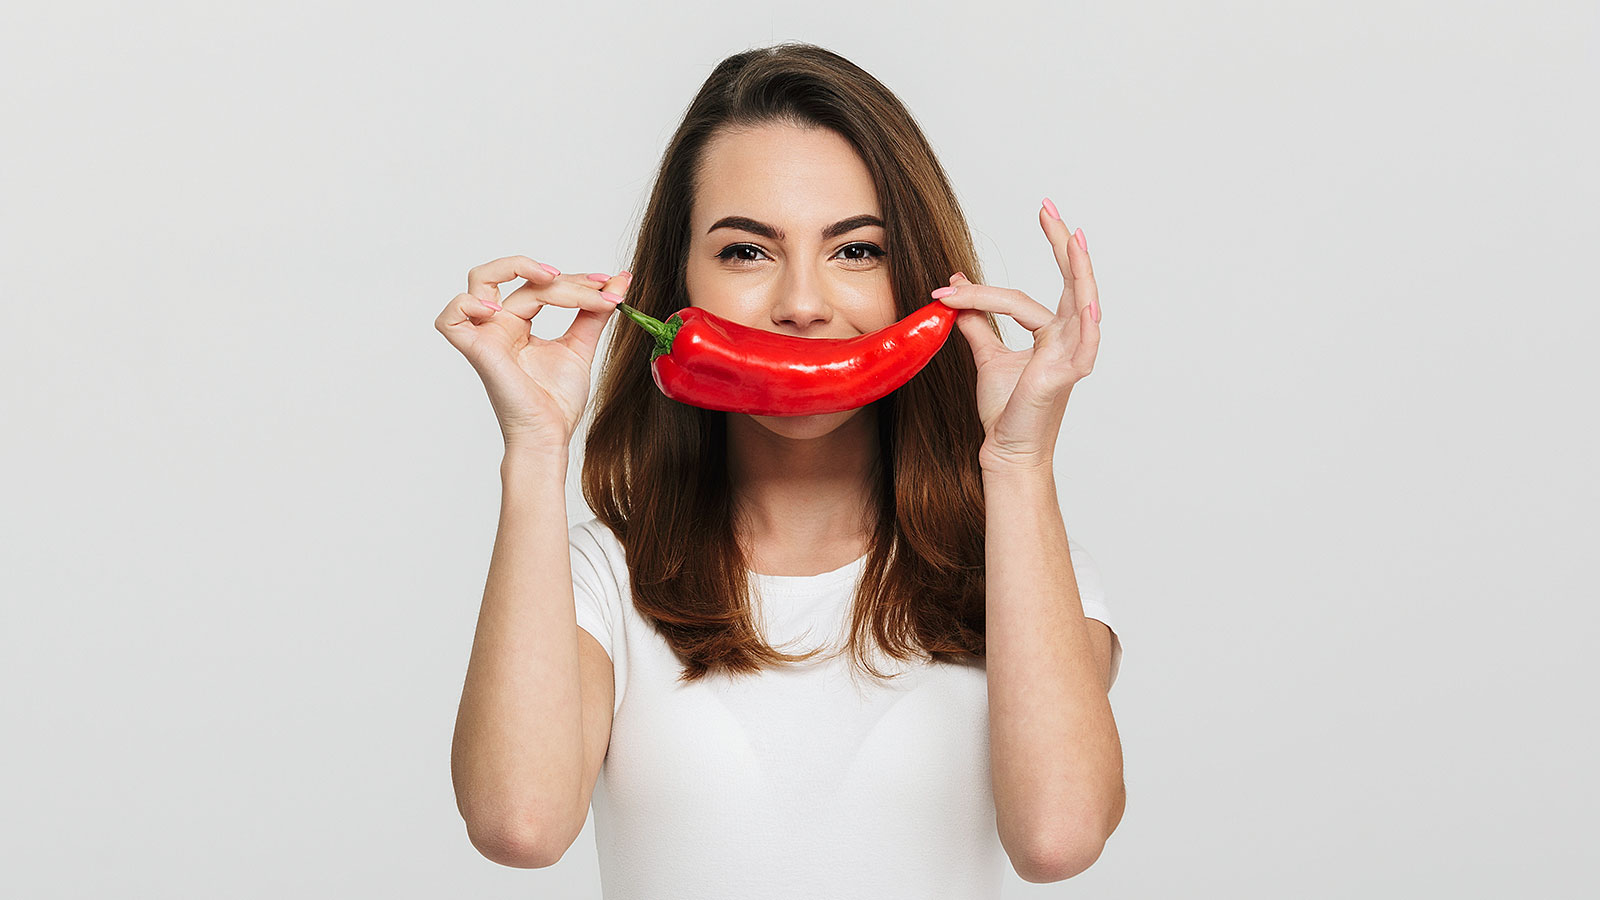 Eating hot peppers may increase life expectancy